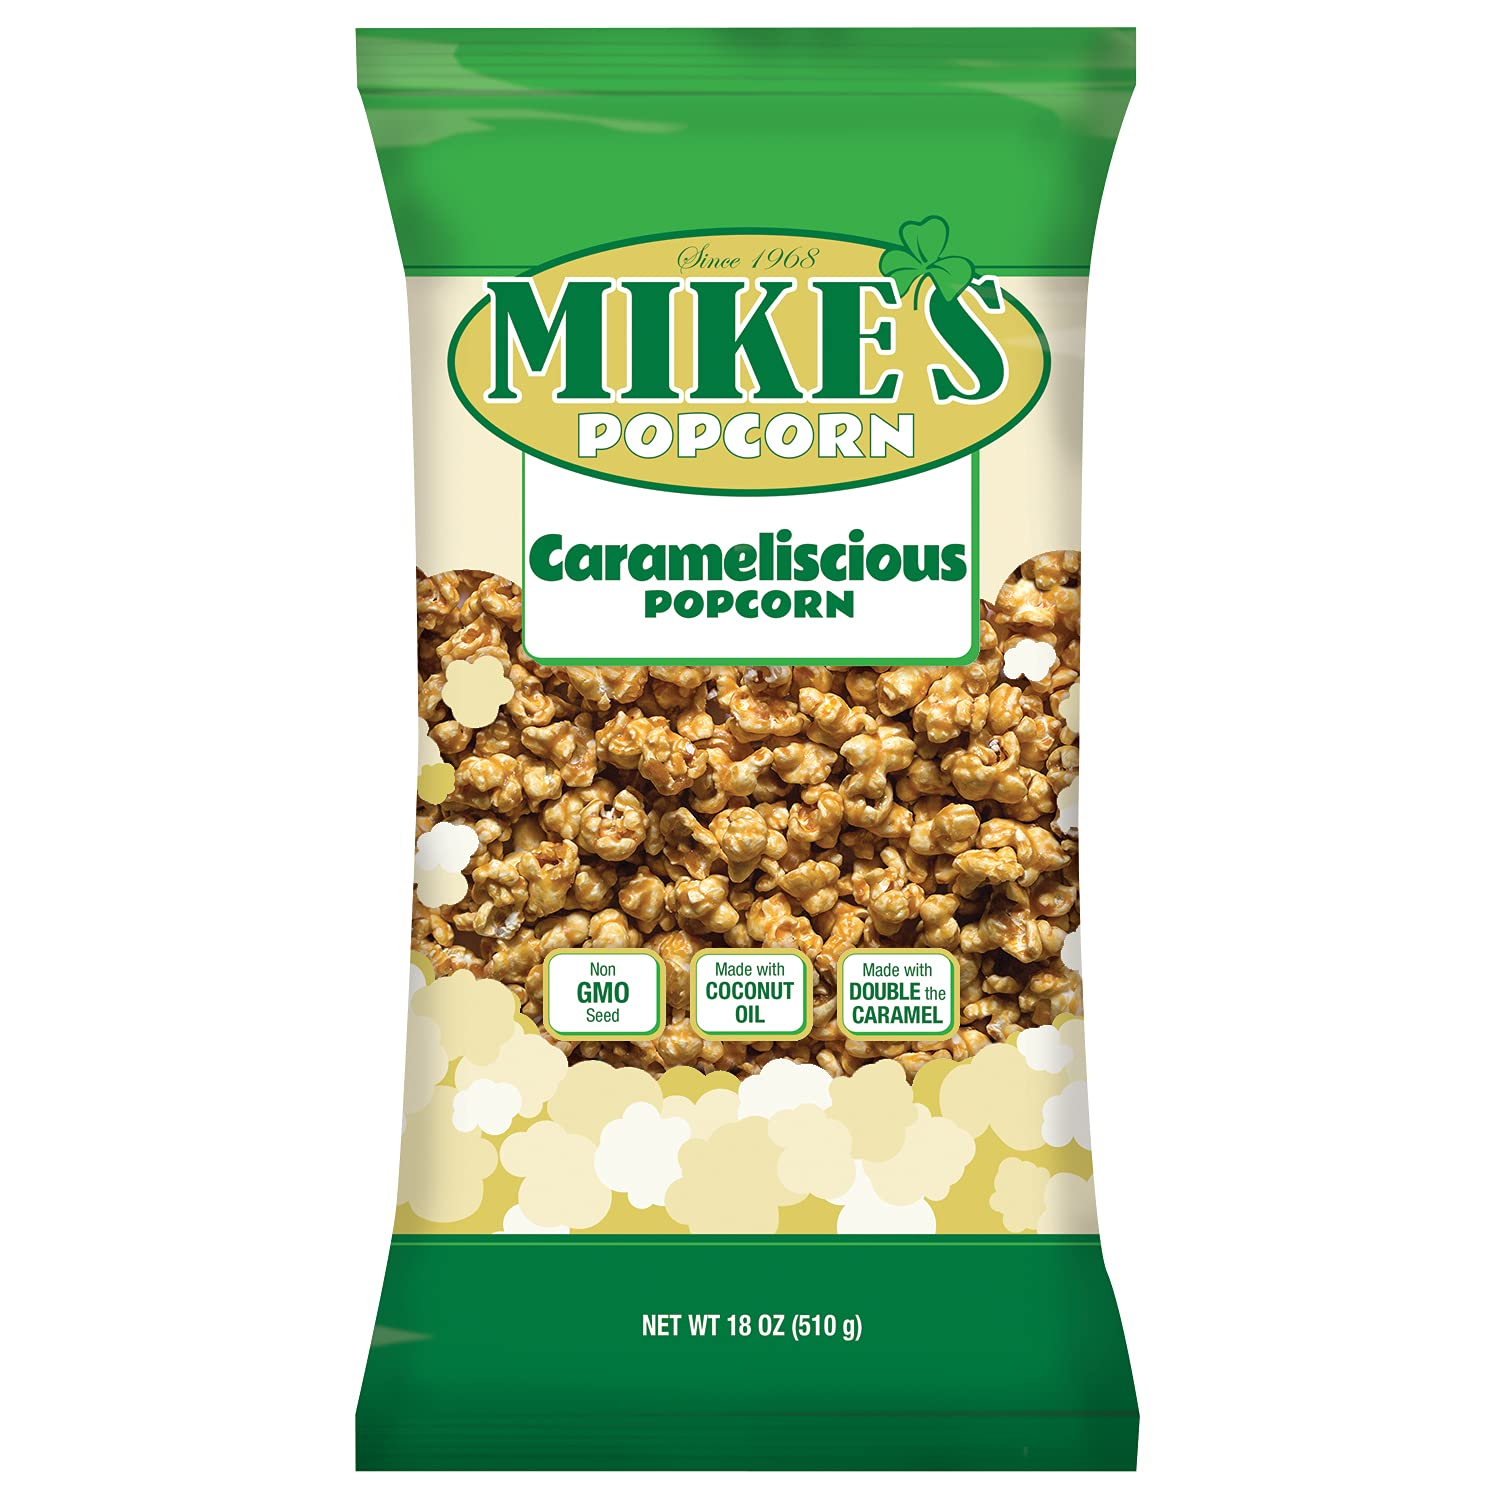 Mike's Popcorn Limited price High order 18-Ounce Carameliscious